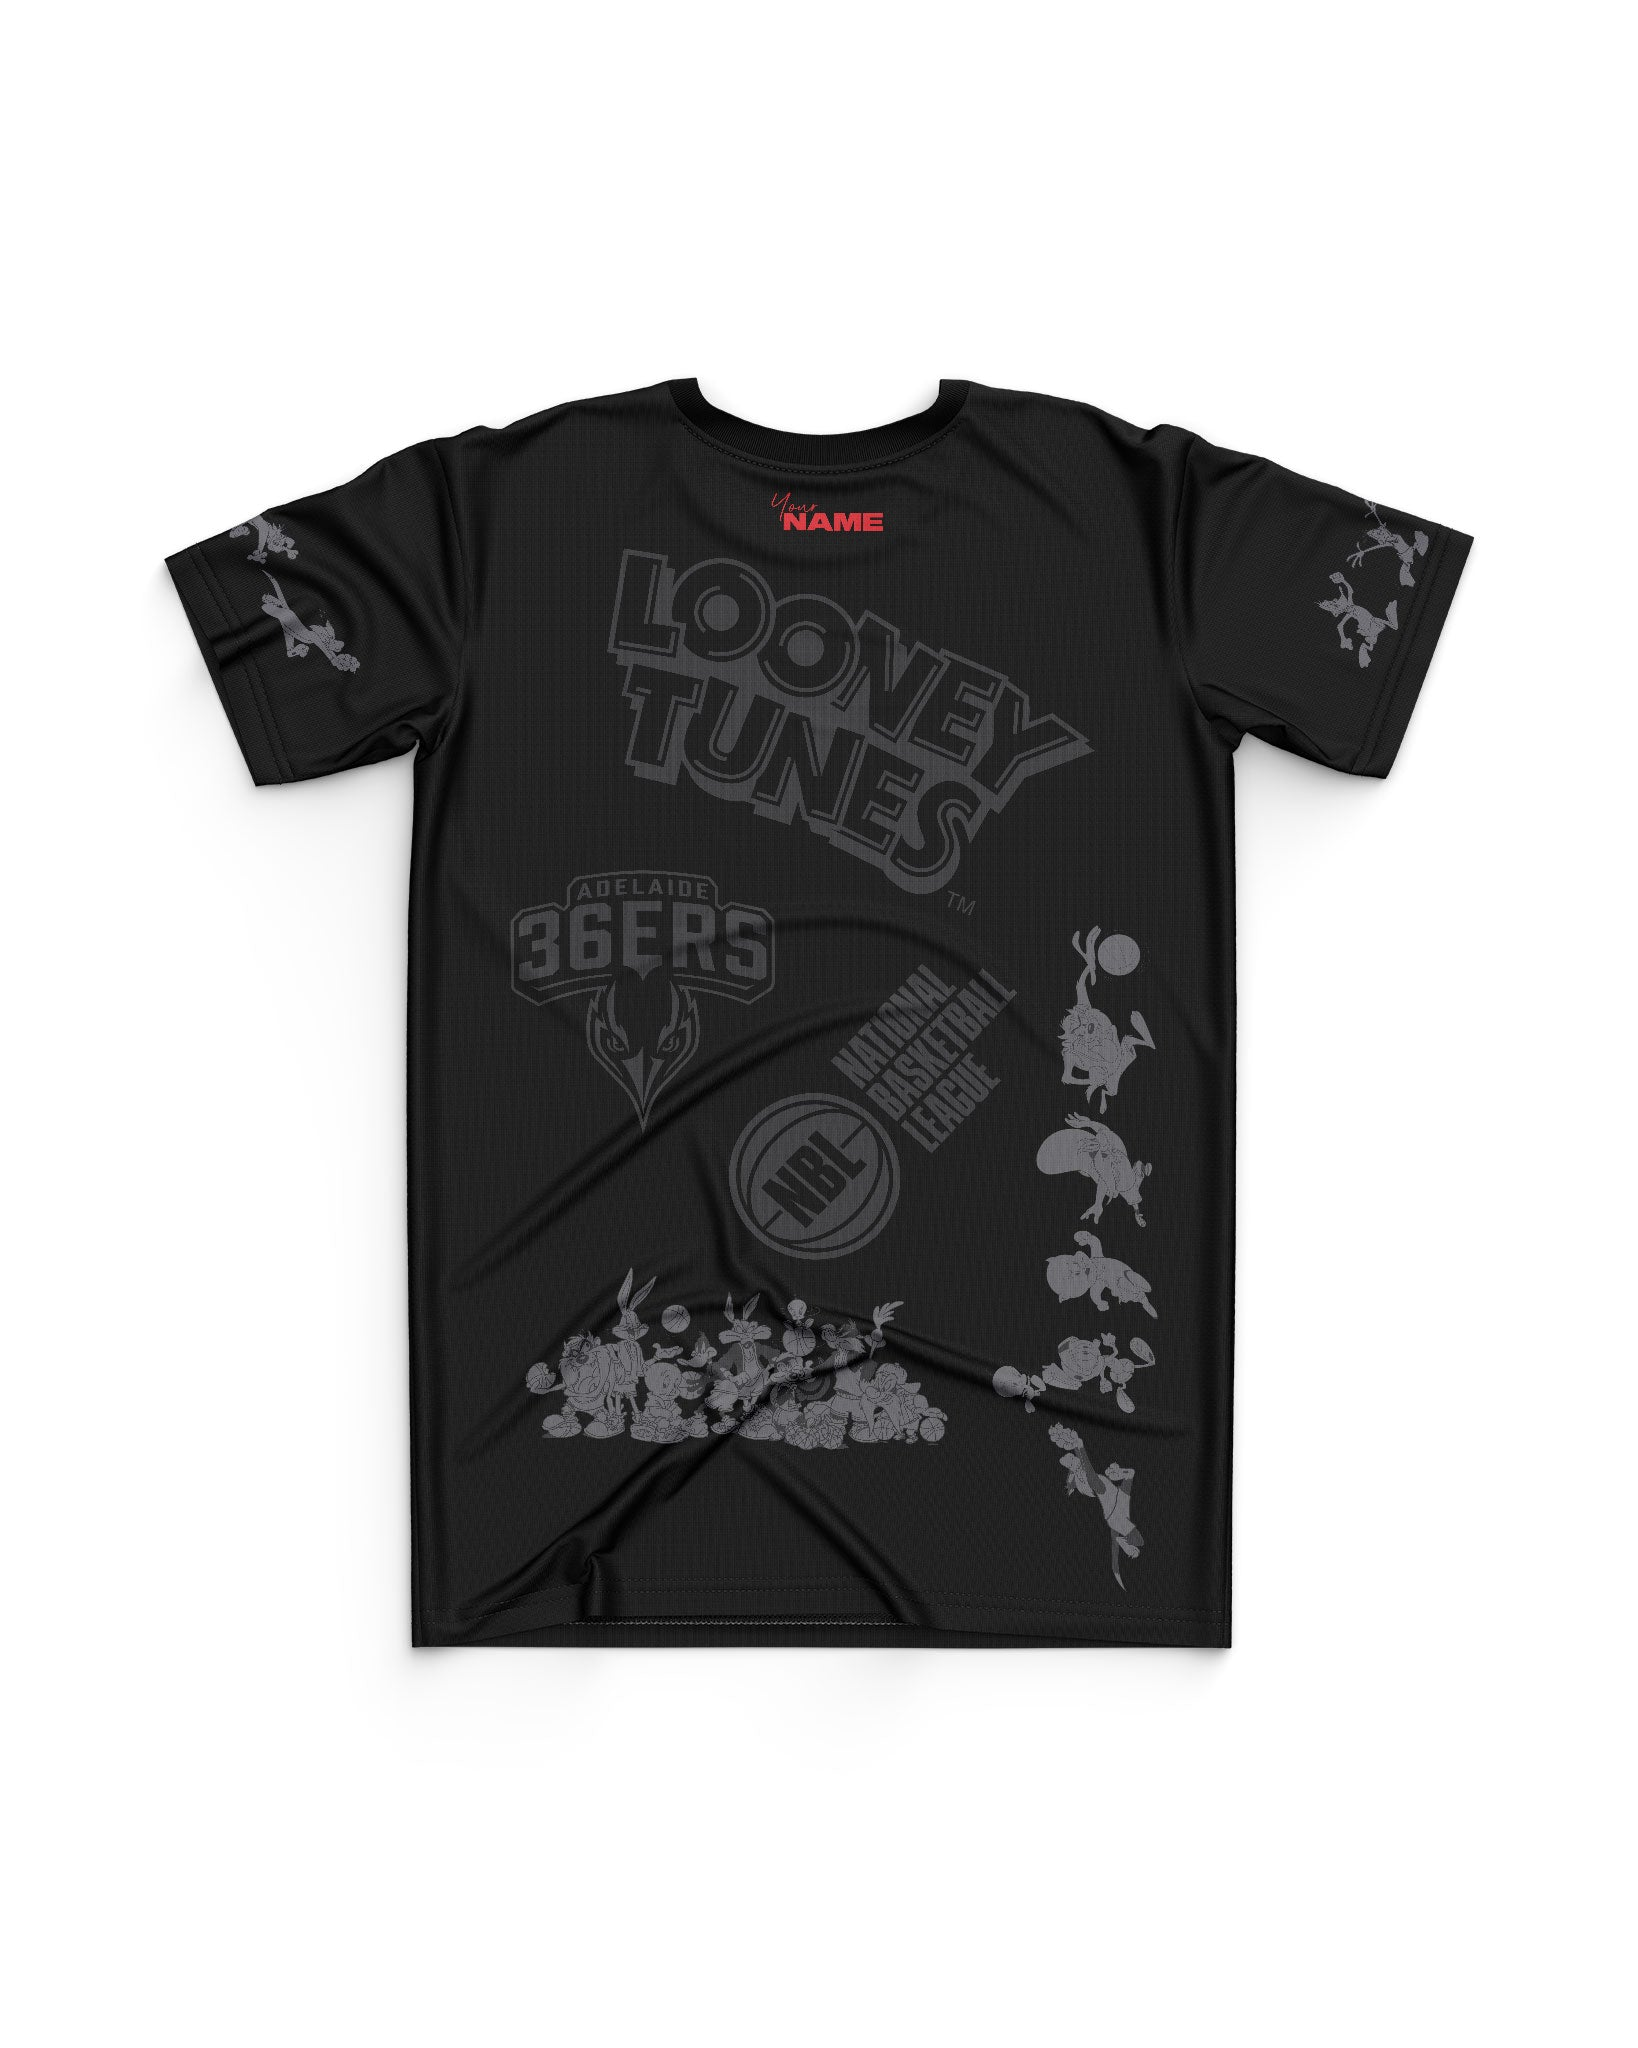 Adelaide 36ers 20/21 Looney Tunes Youth Mono Tee - Personalised